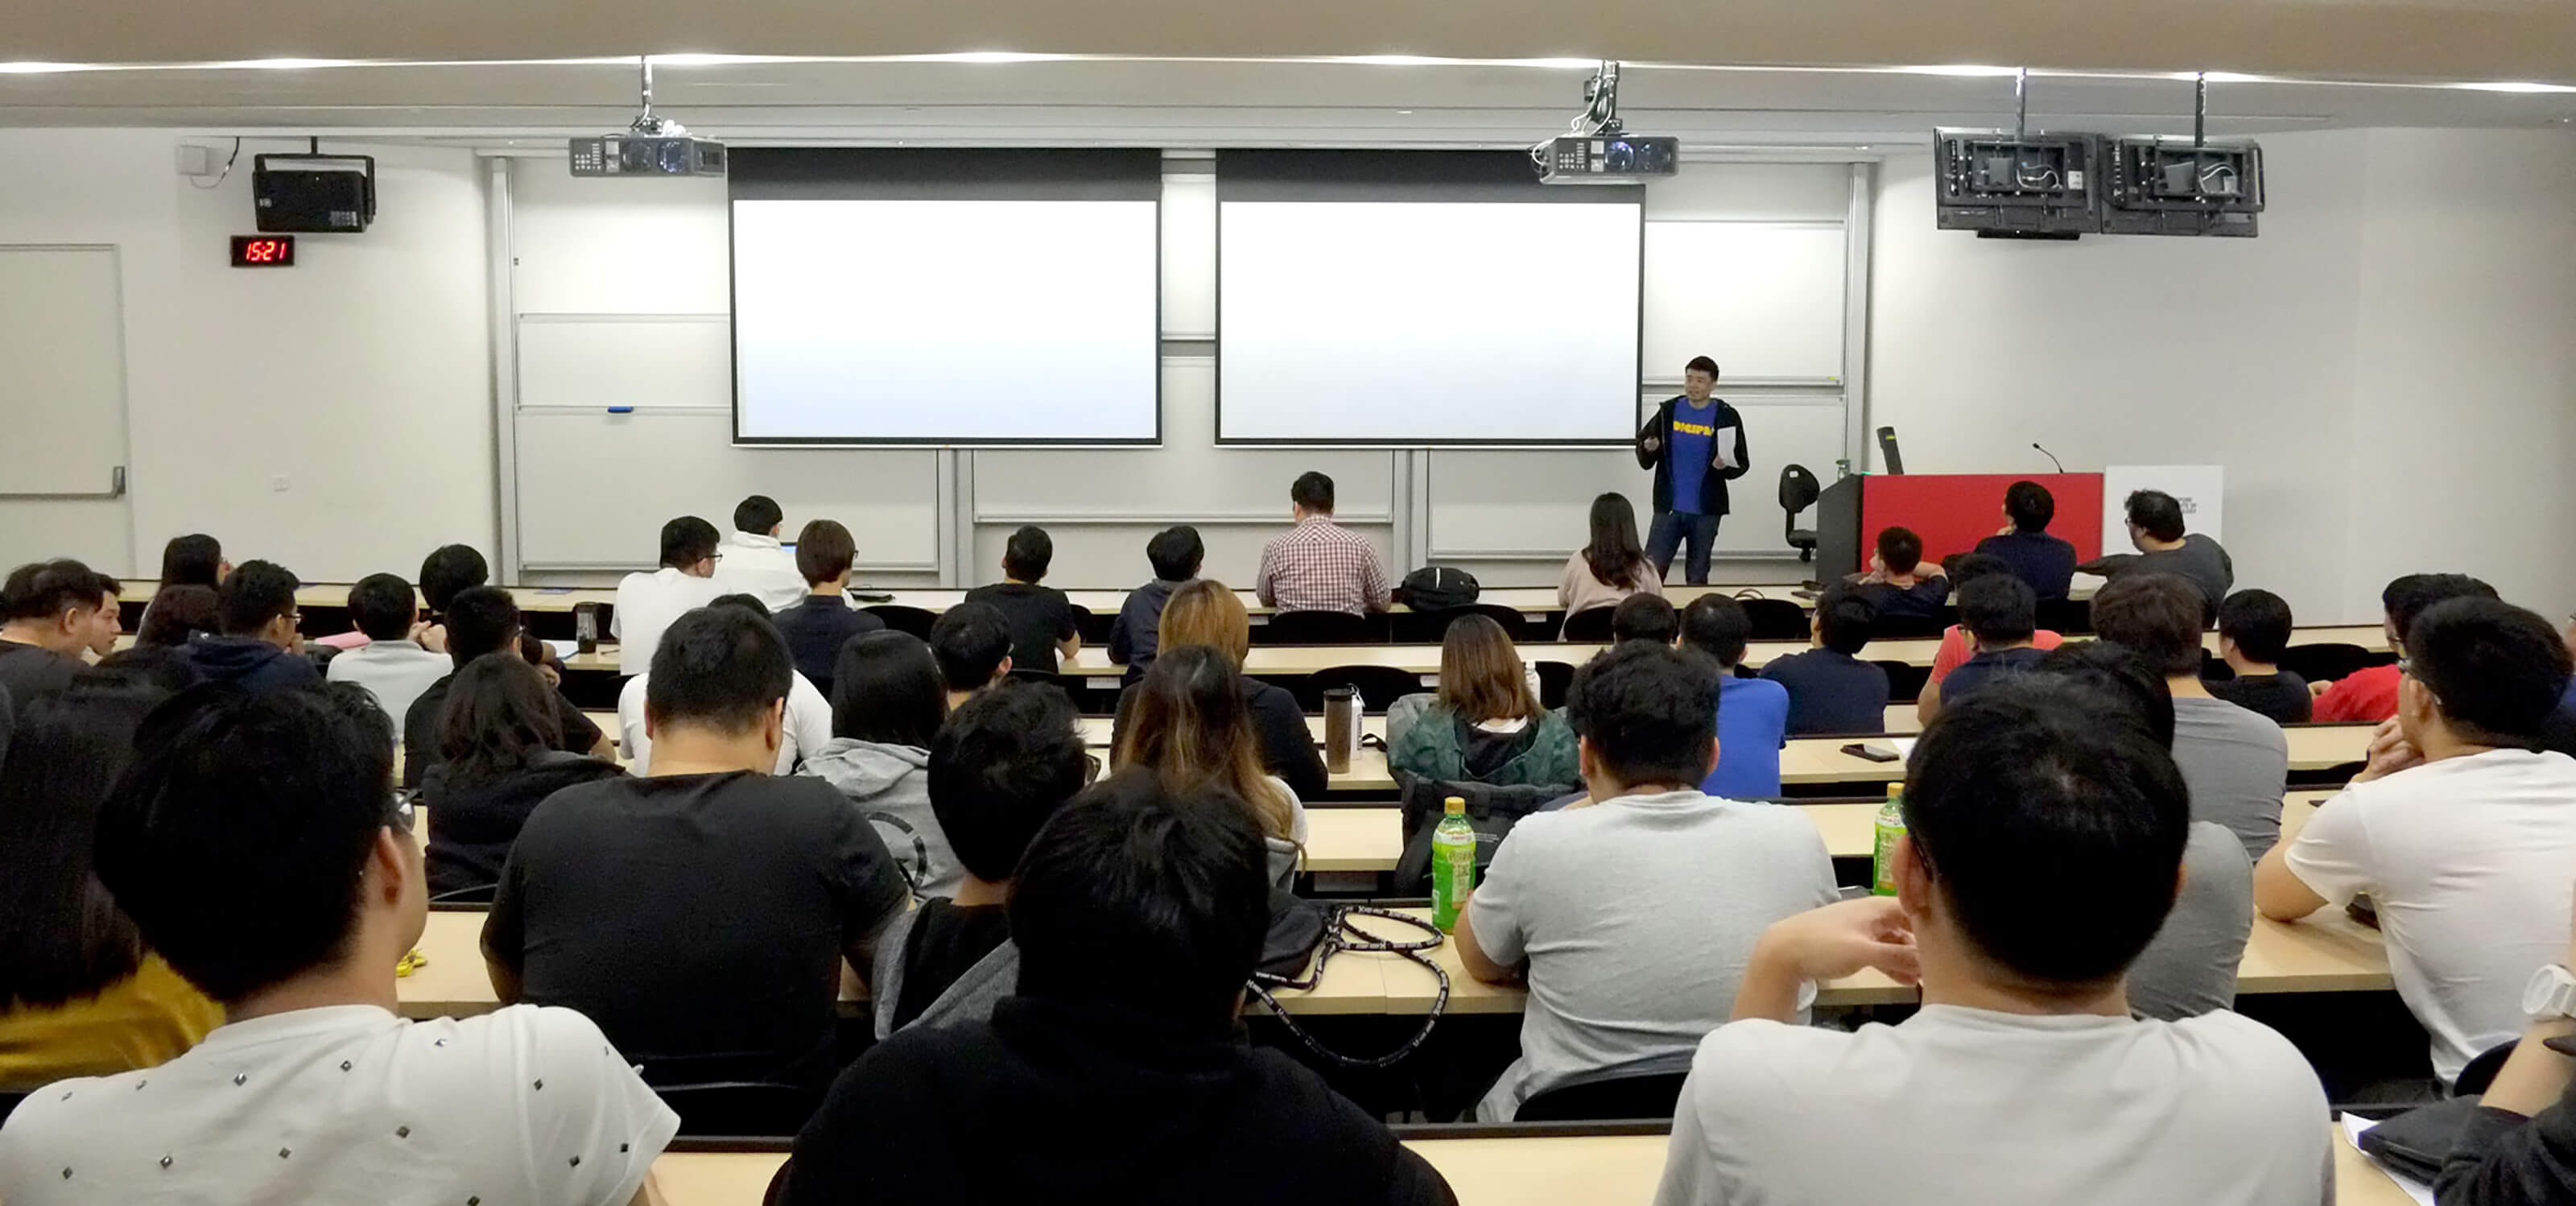 DigiPen (Singapore) BS in RTIS alumnus Tan Yao Wei speaks in front of a class